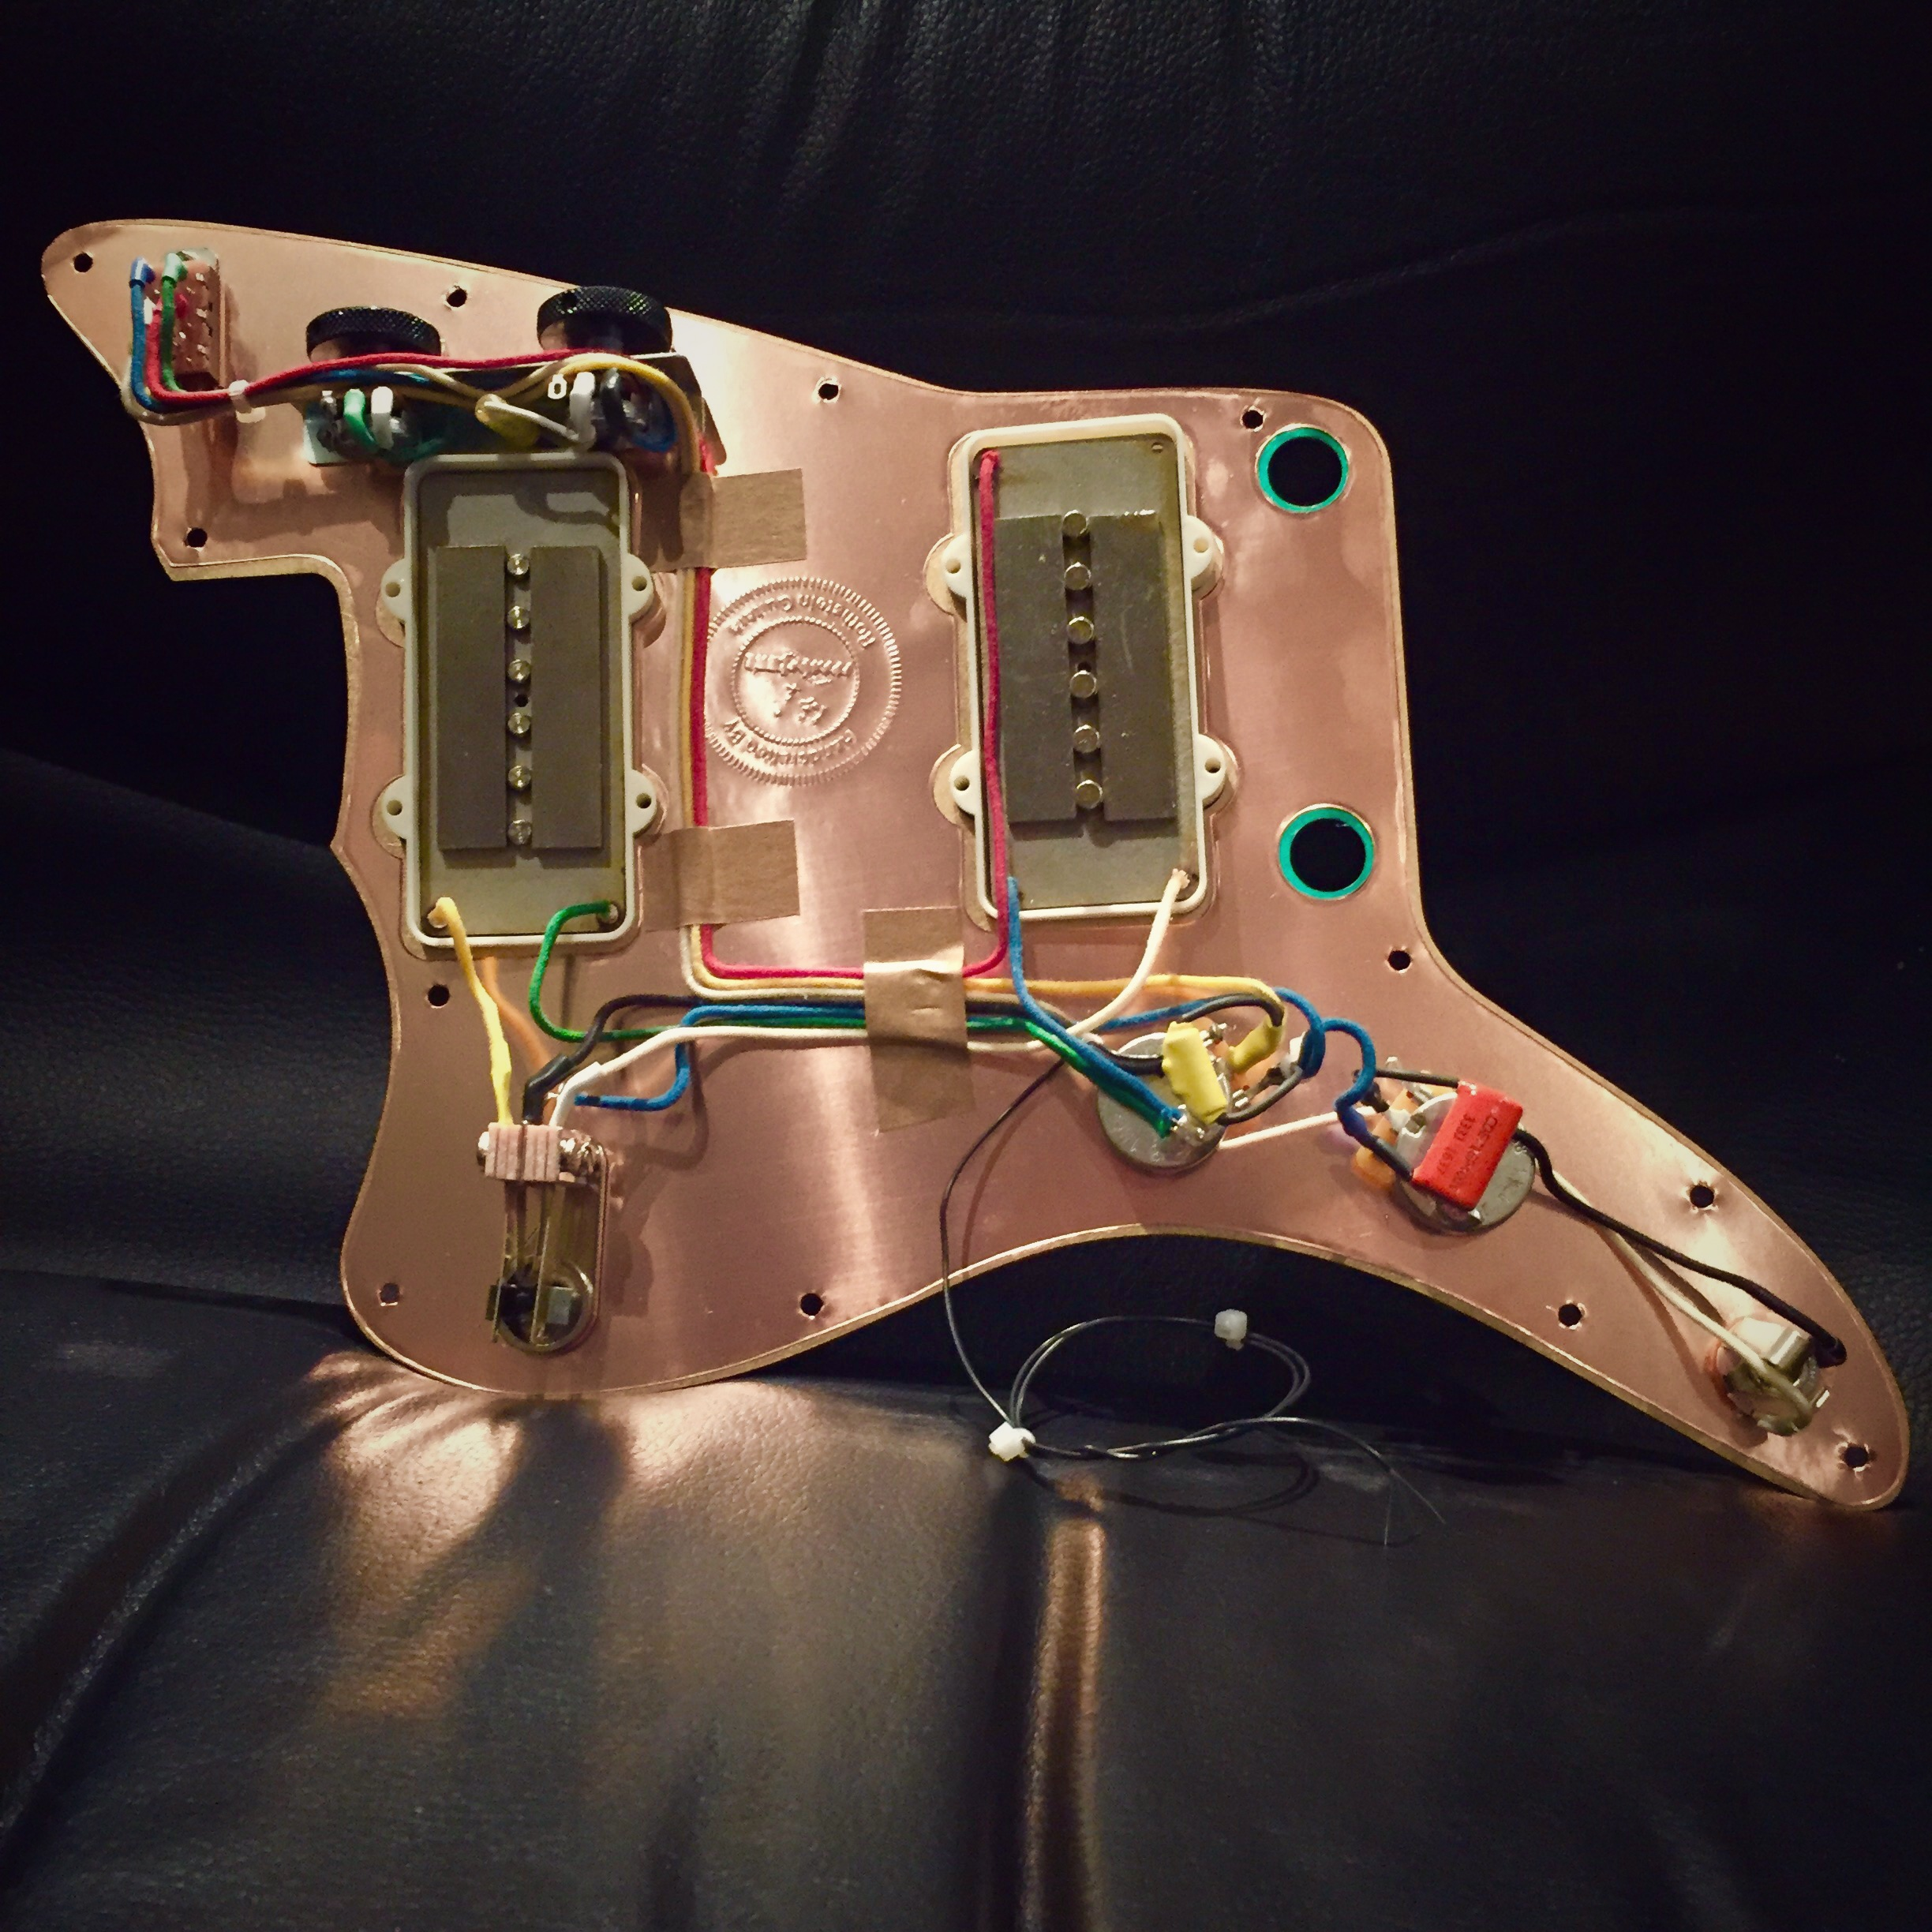 FullSizeRender 10 jazzmaster rothstein guitars jazzmaster wiring harness at reclaimingppi.co